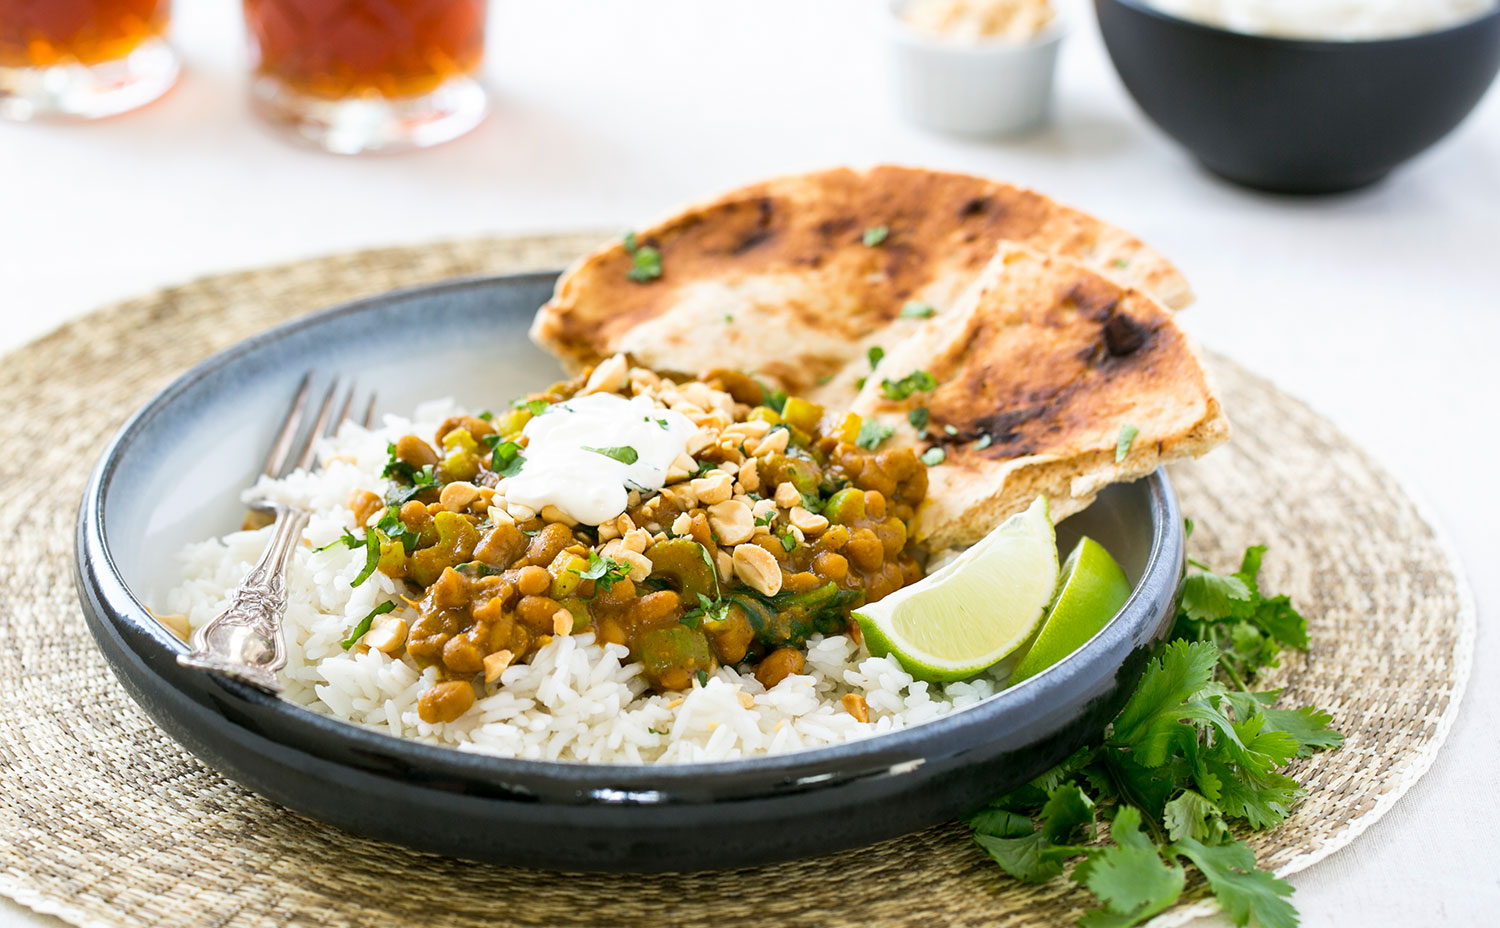 Curried Beans & Vegetables